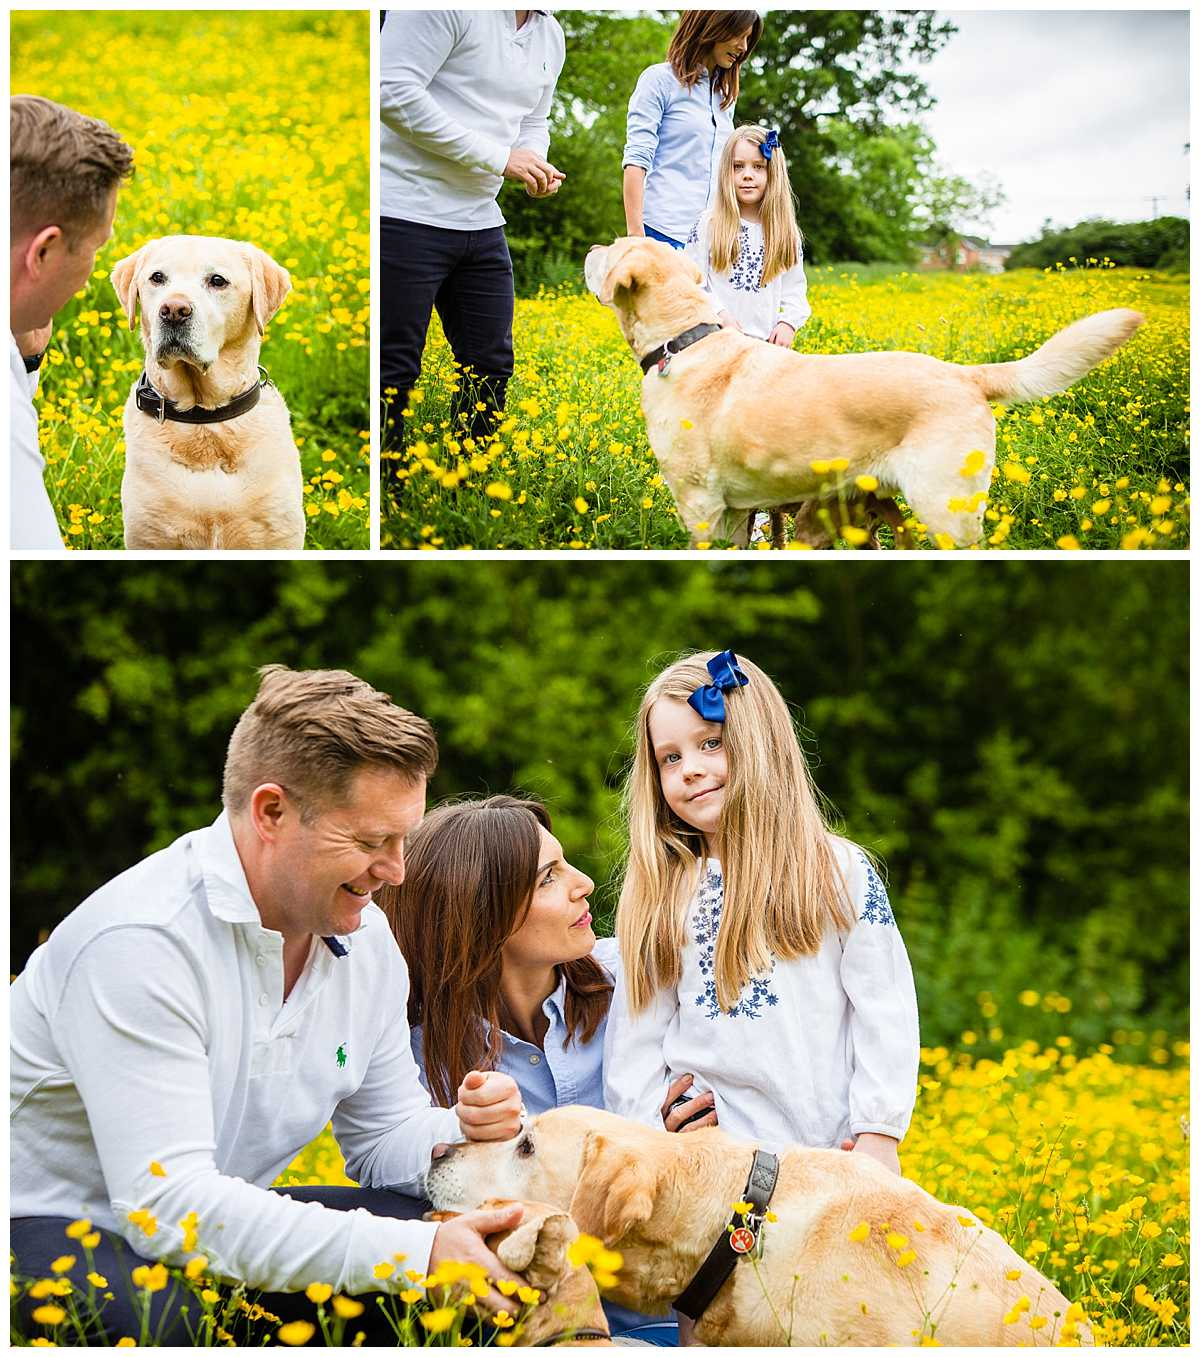 various photos with golden labrador dog looking at owner amongst lots of yellow buttercups